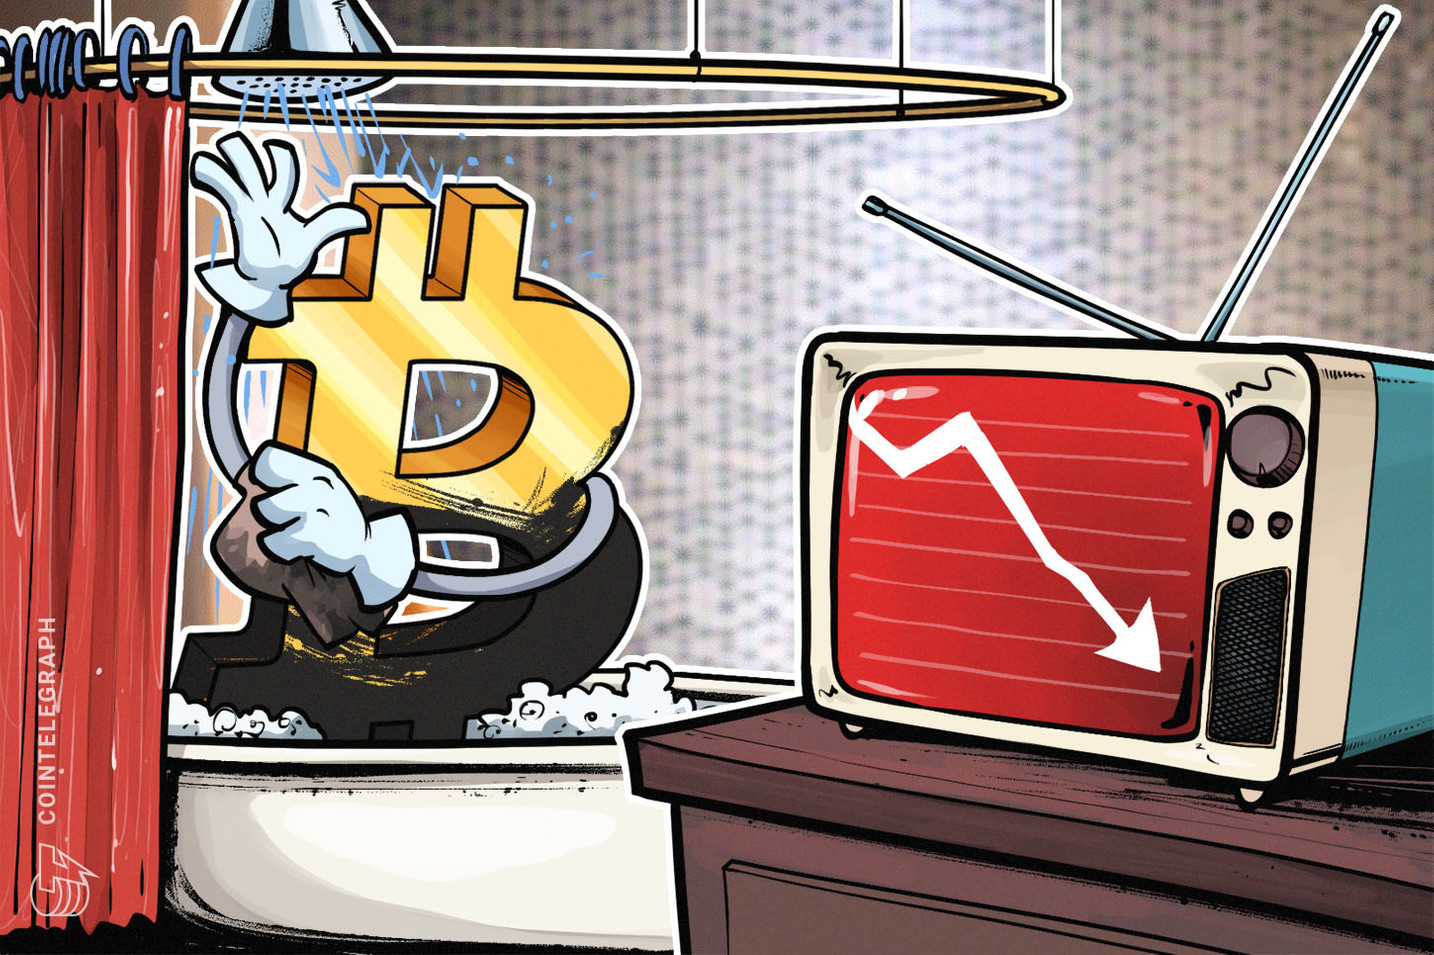 Bitcoin Price Dips Below $9,200 After Rejection by $9,500 Resistance